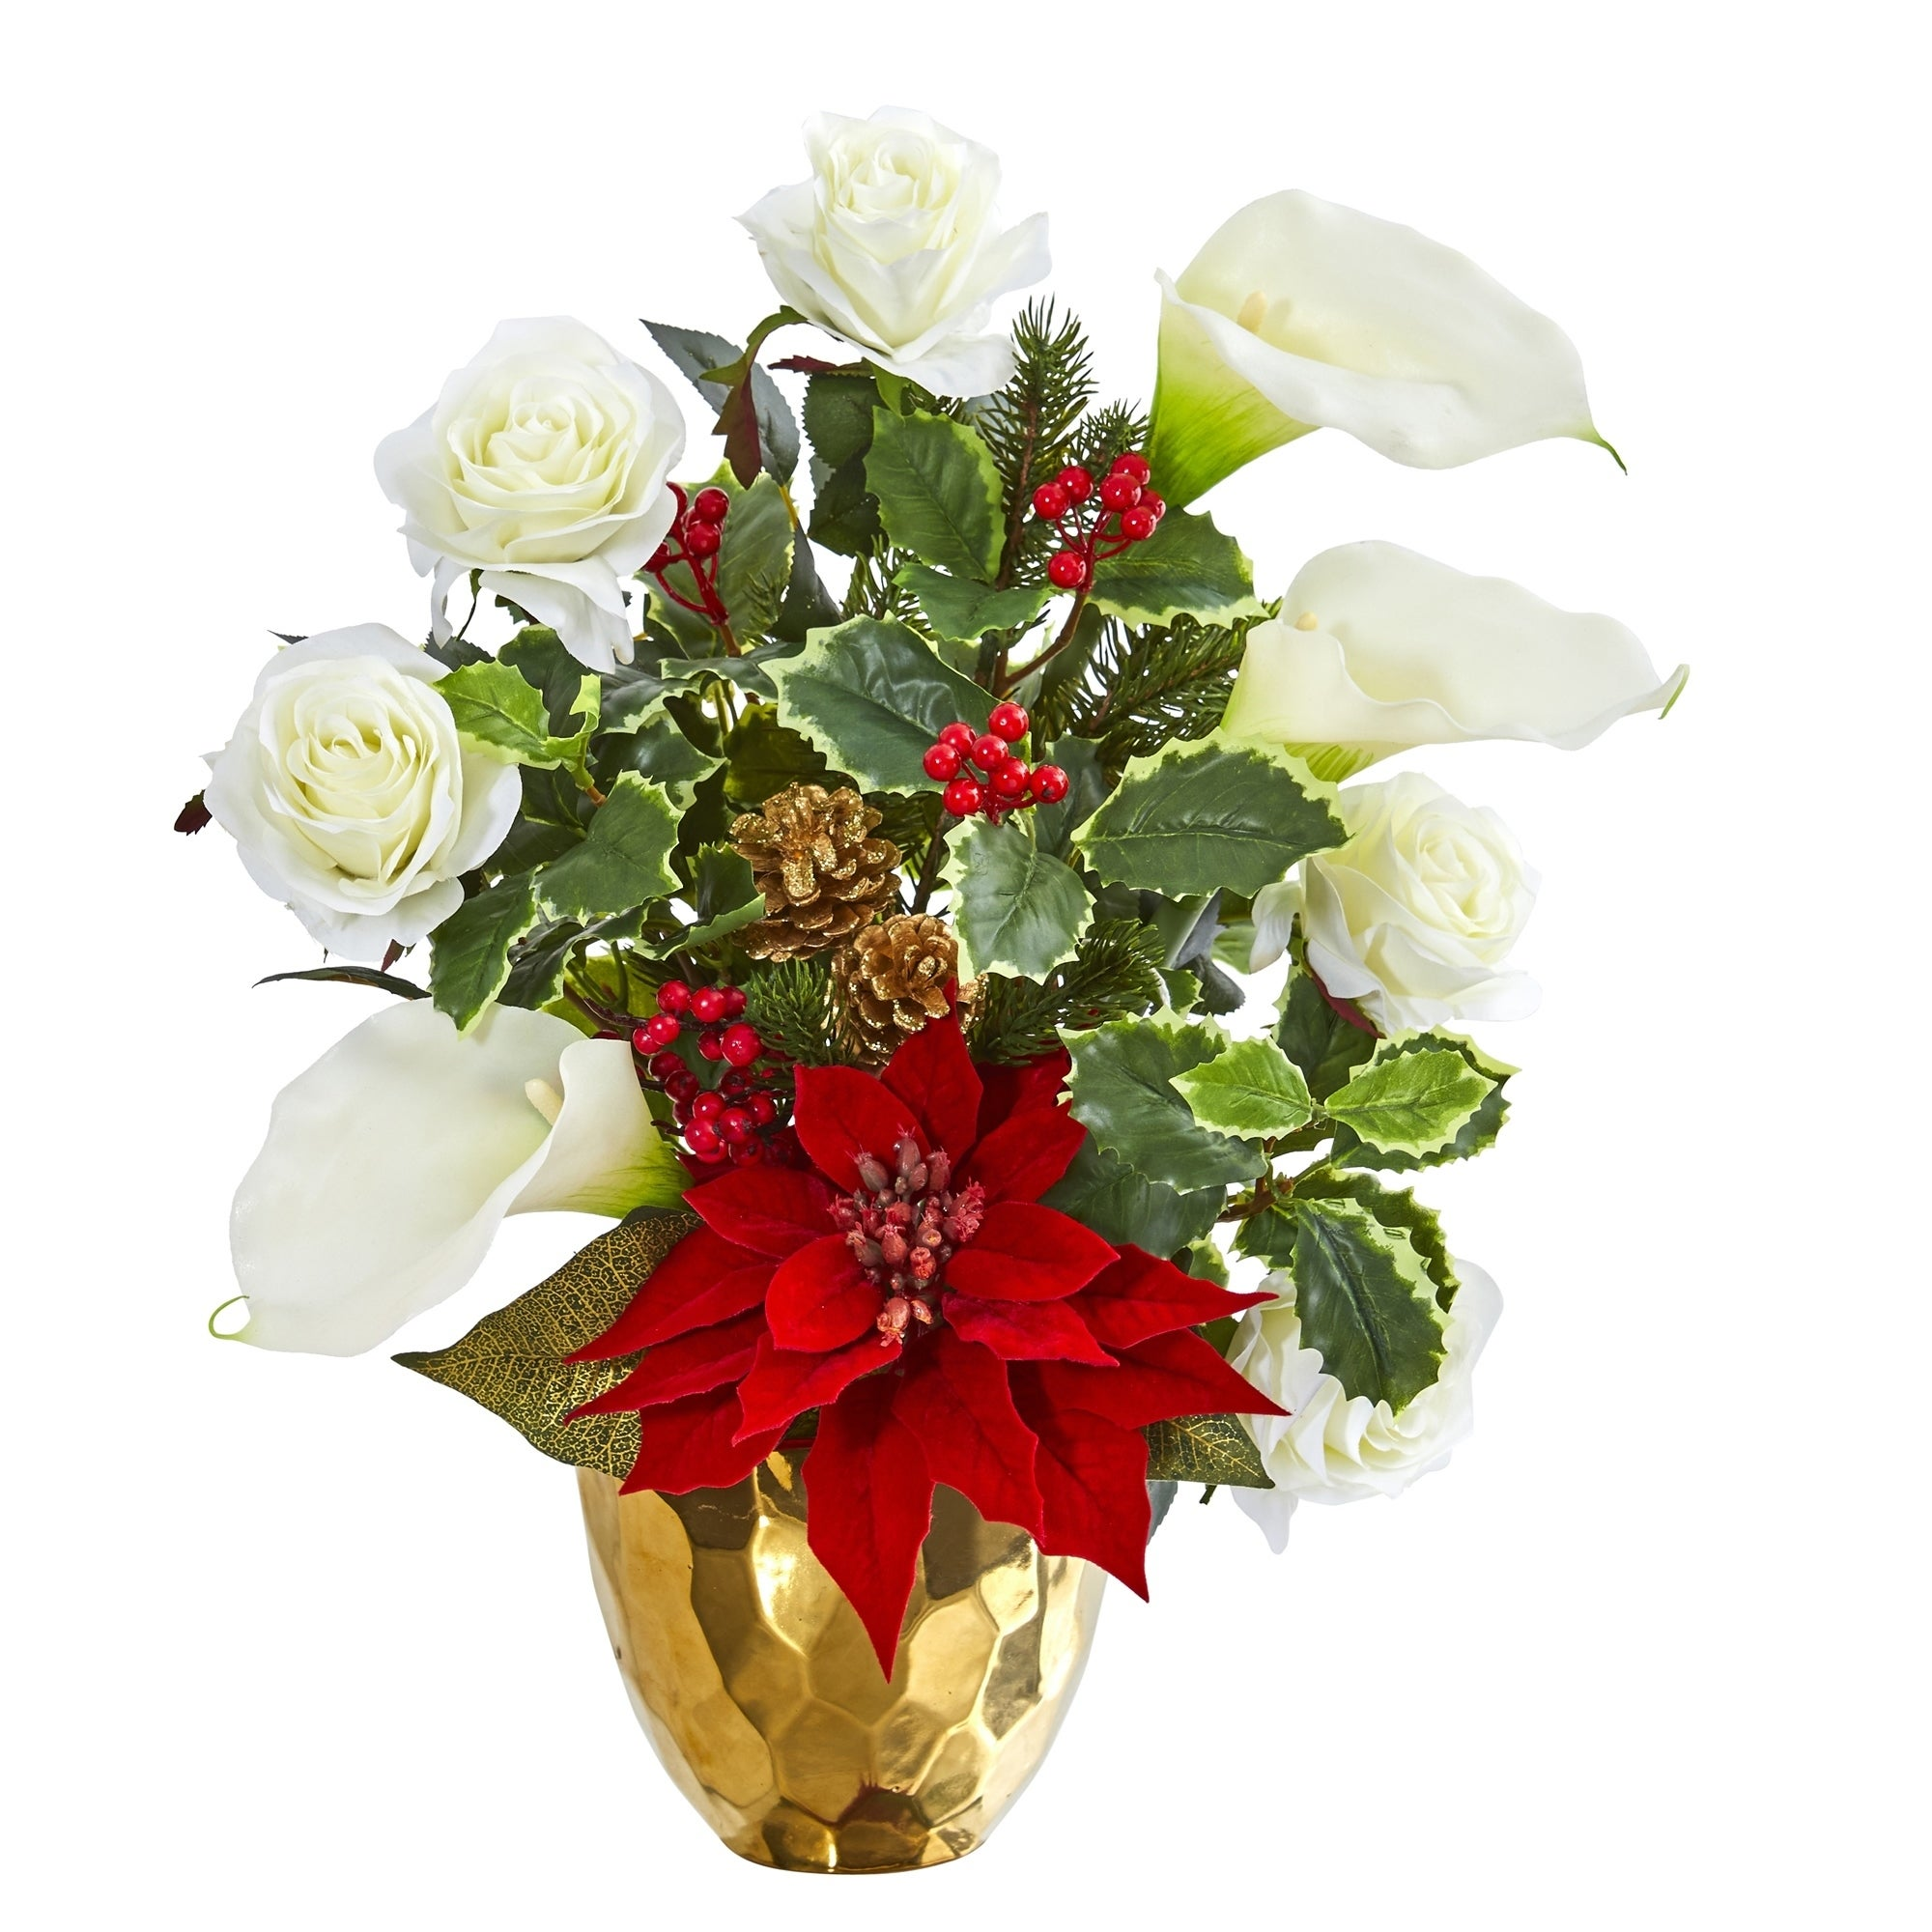 Holiday Inspired Artificial Arrangement in Gold Vase